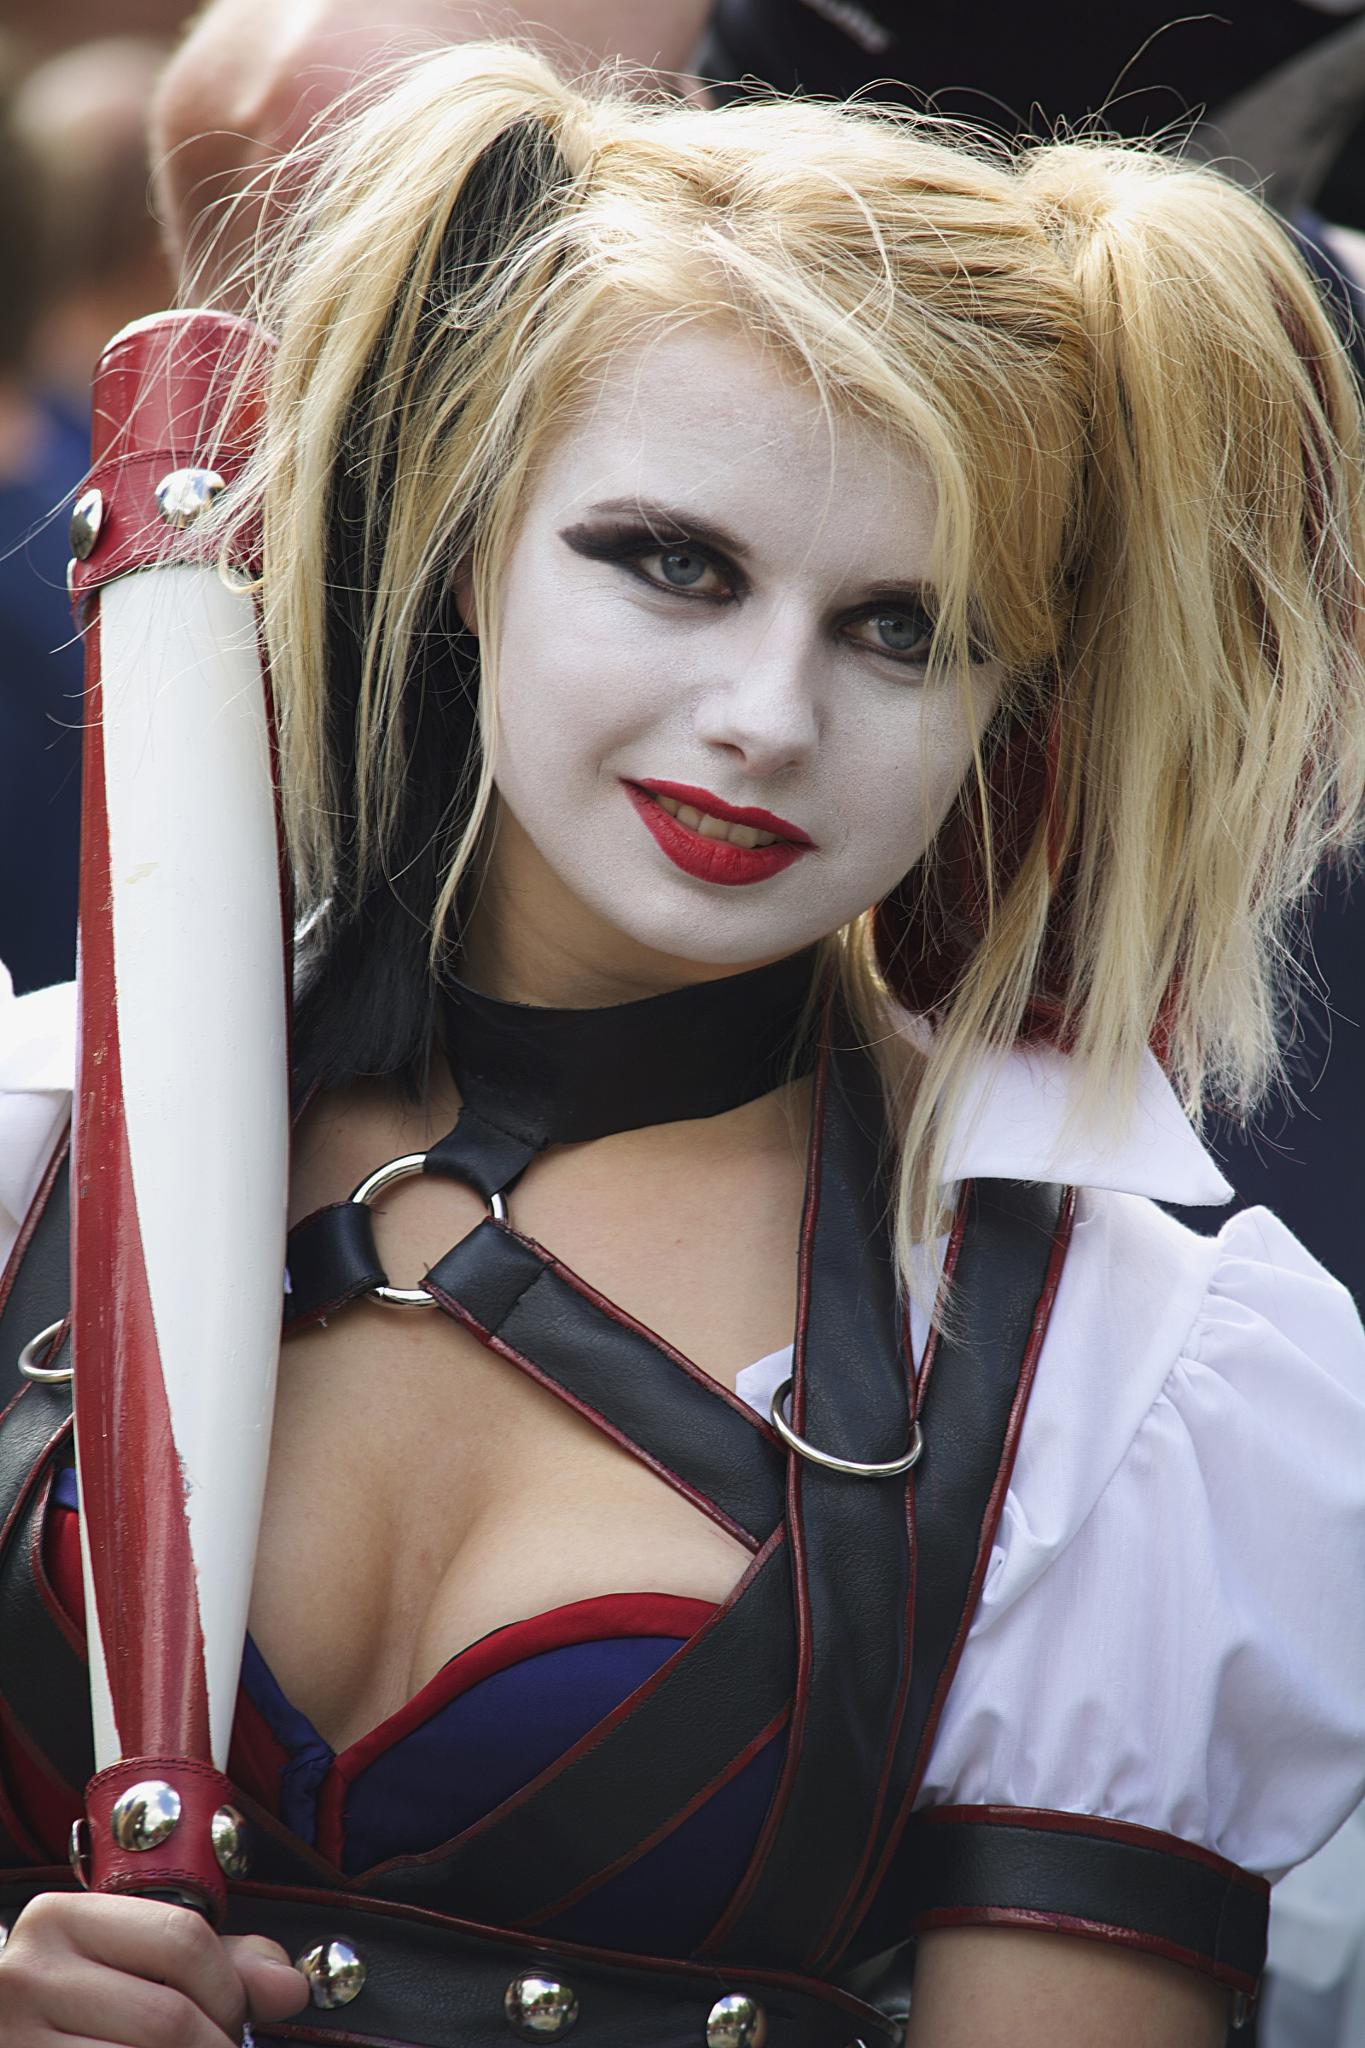 Cosplay - Comic Con by Mike Shawcross